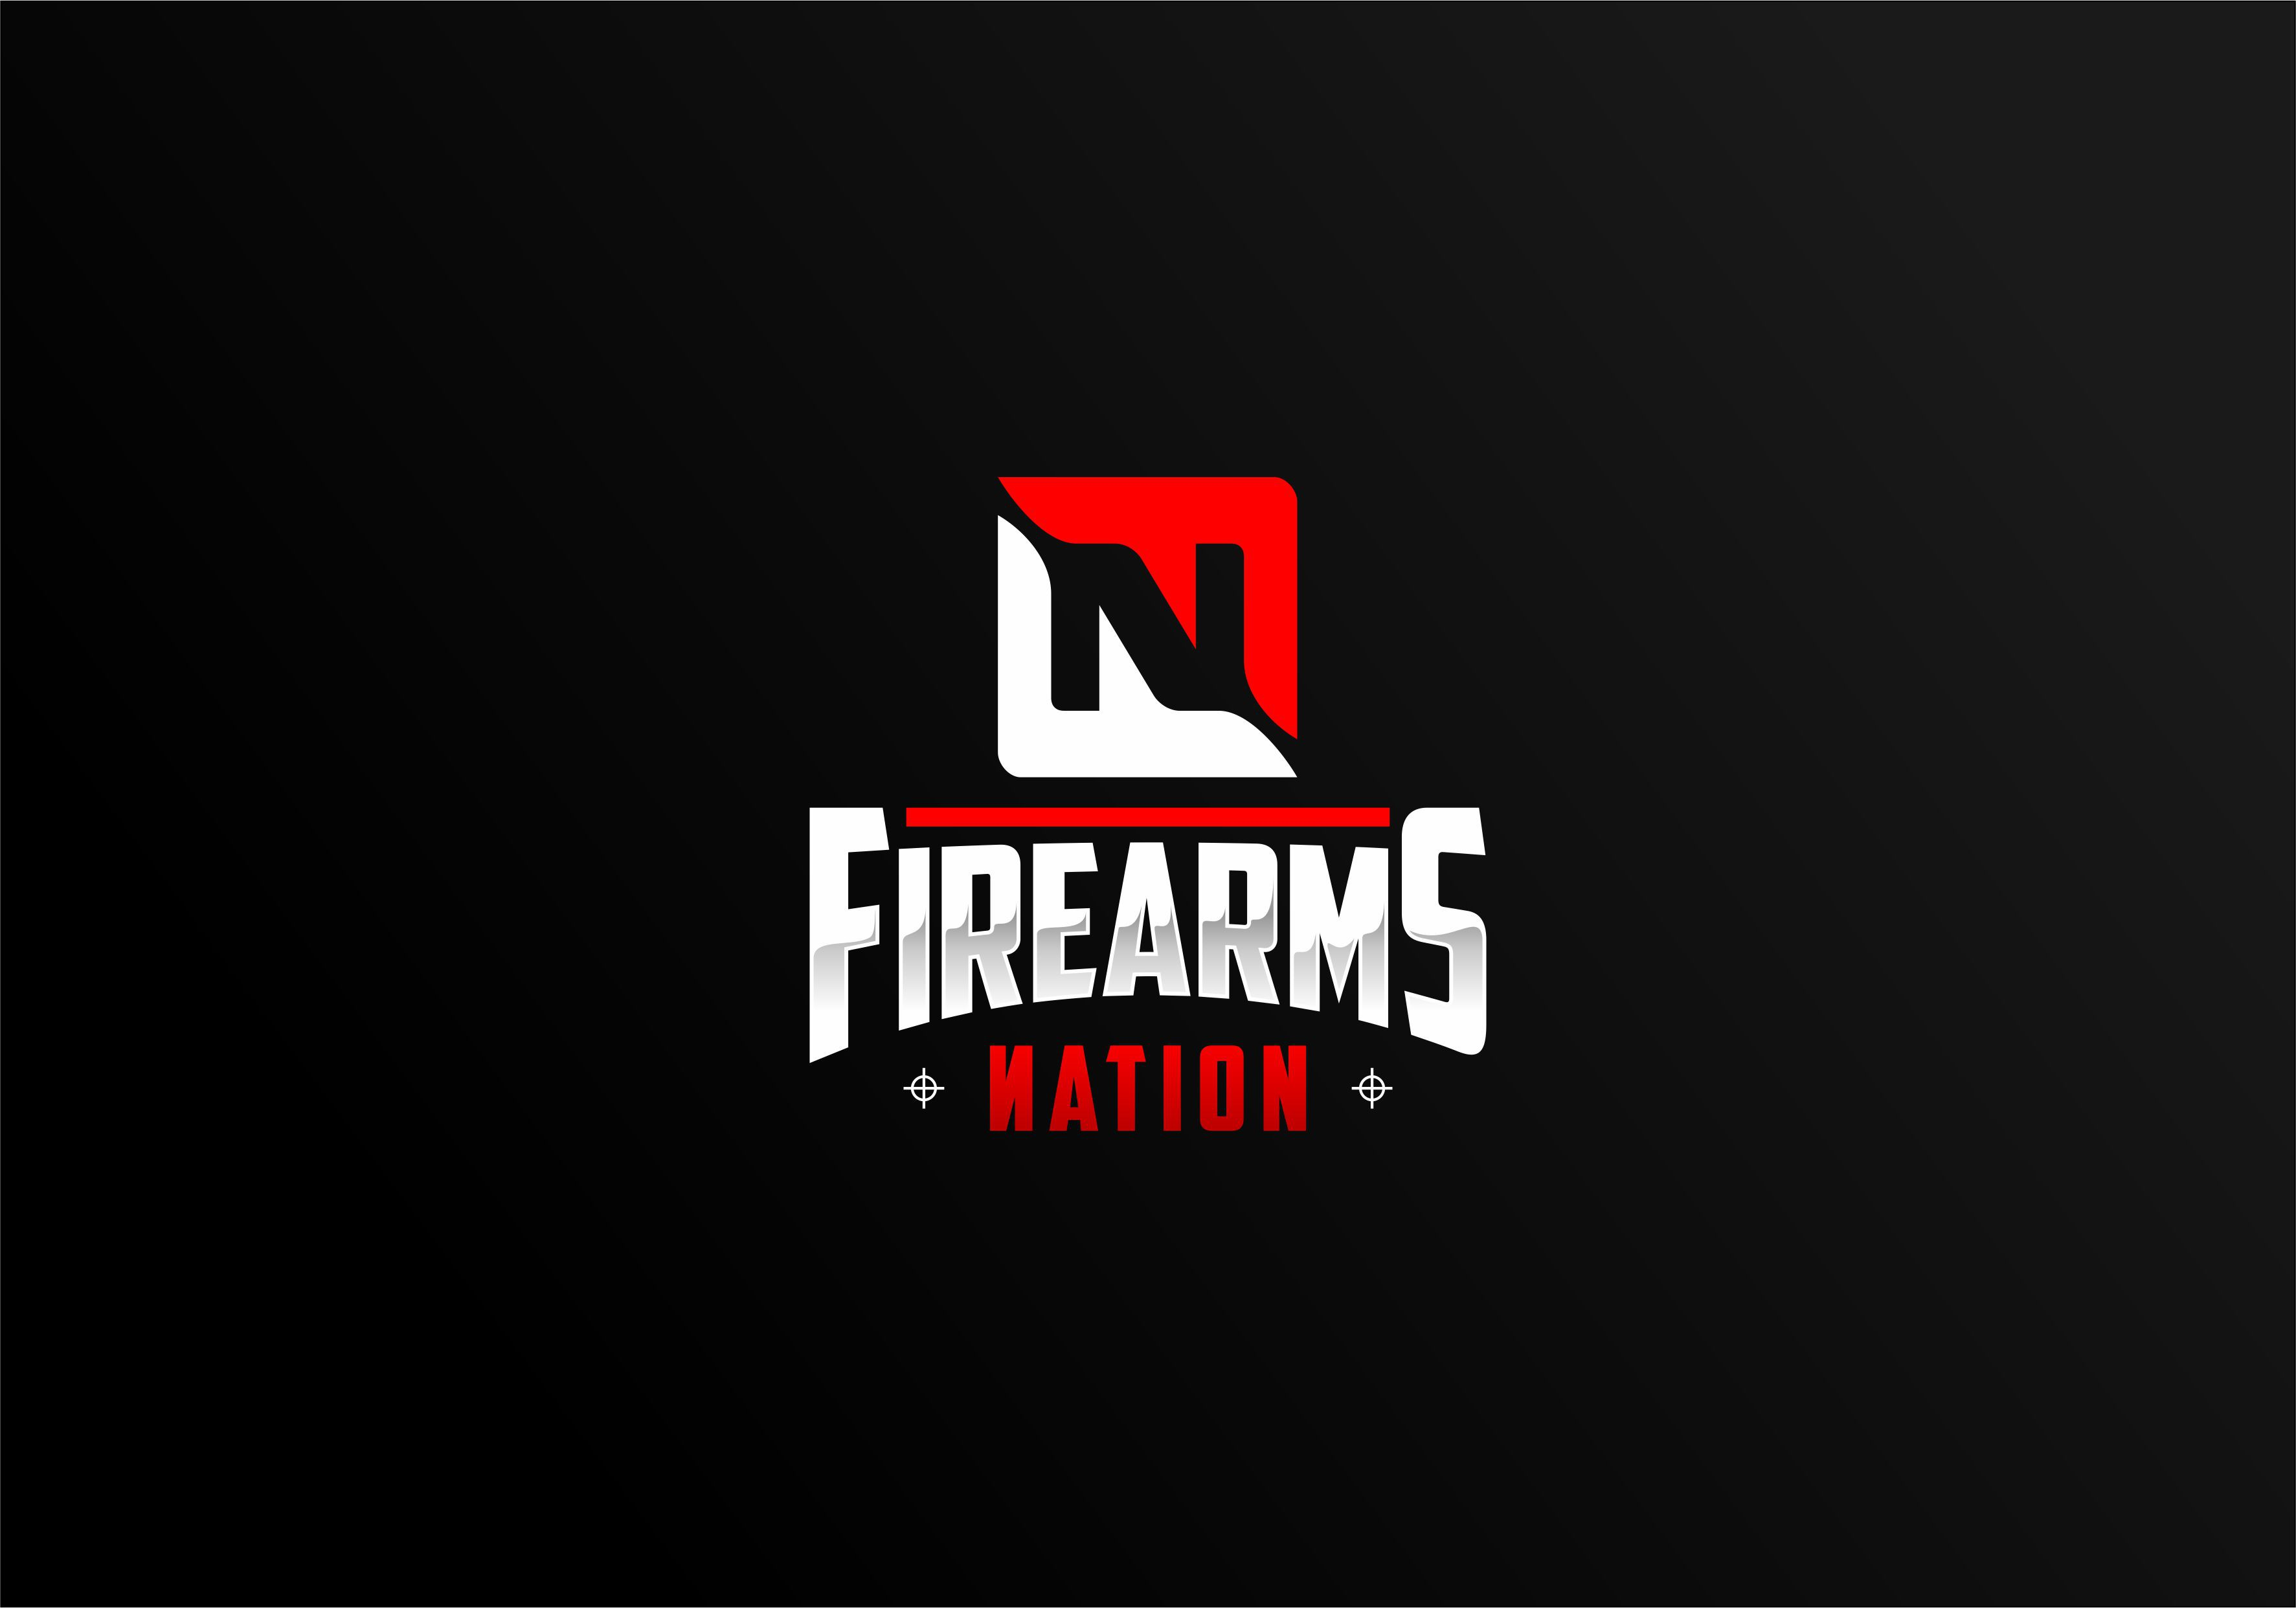 Help create a movement...the Firearms Nation!